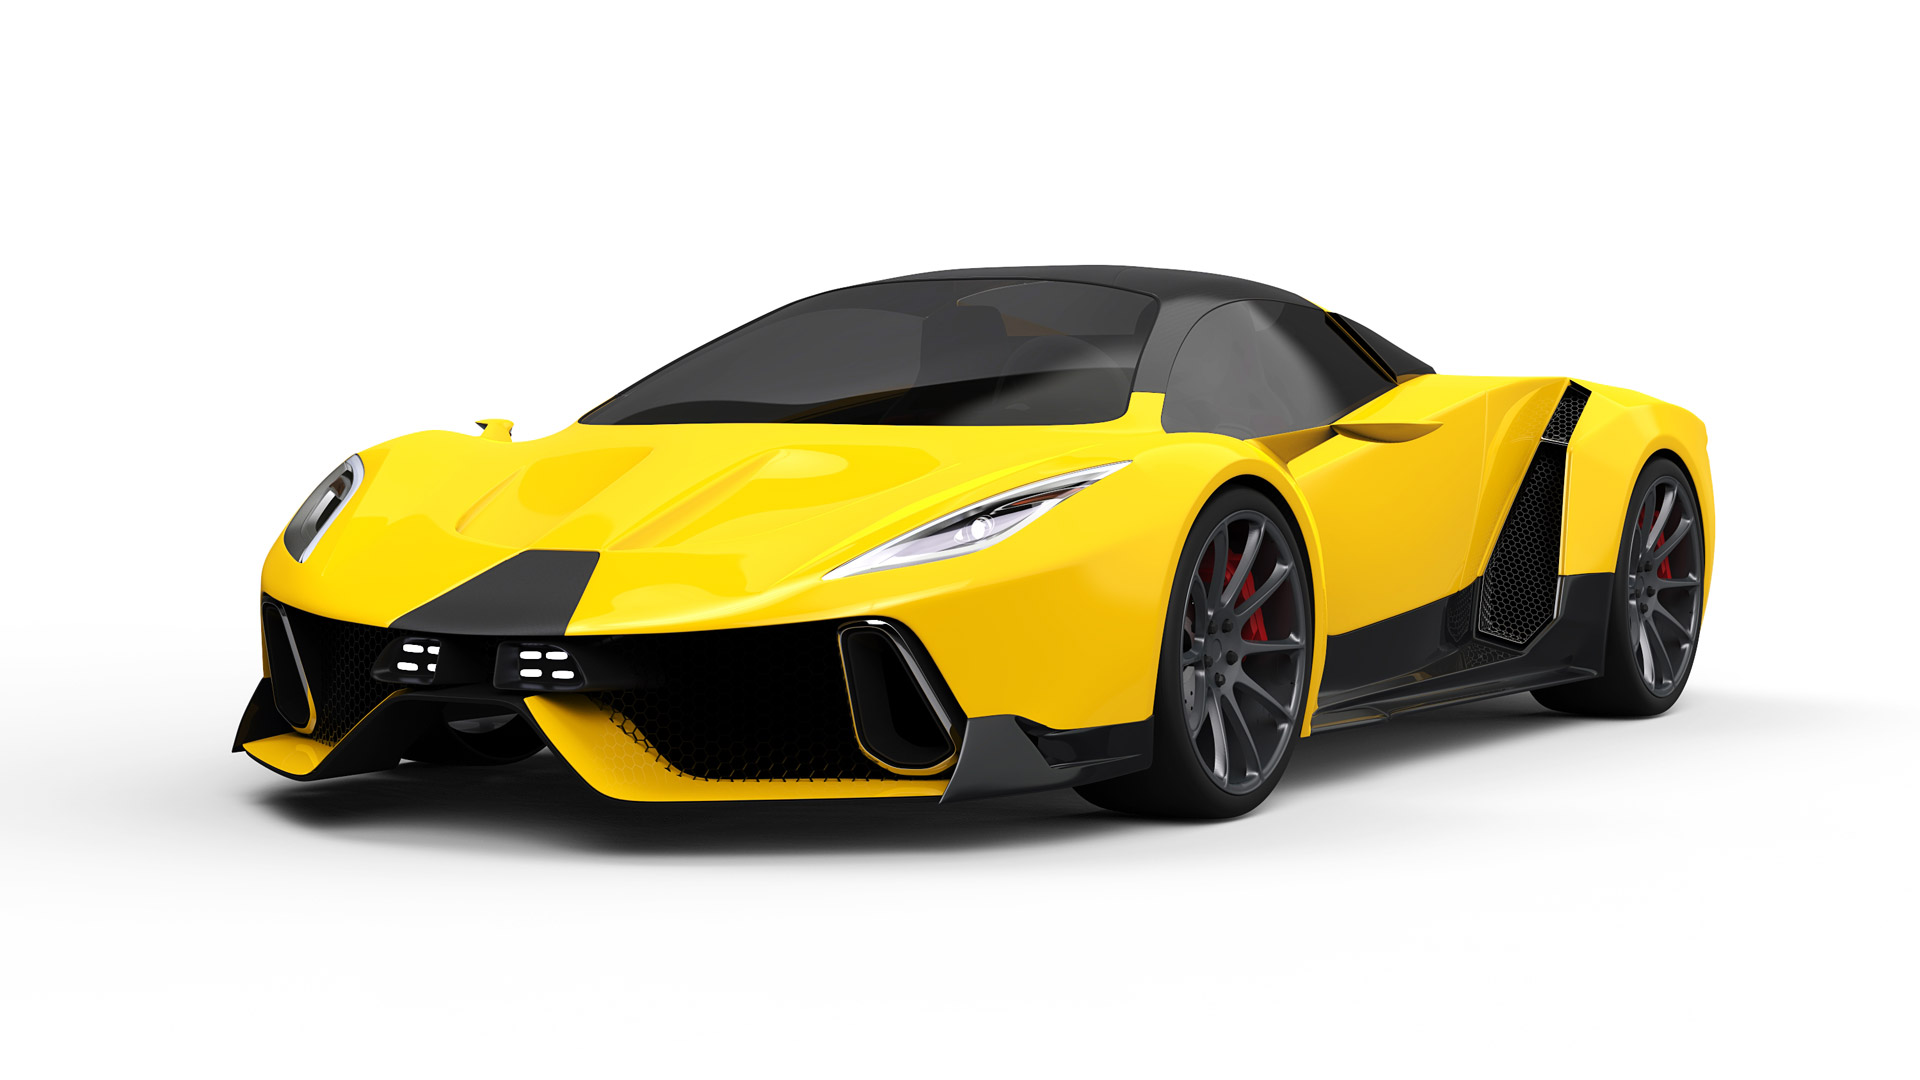 PSC Motors Wants To Build A $75K Supercar | Top Speed